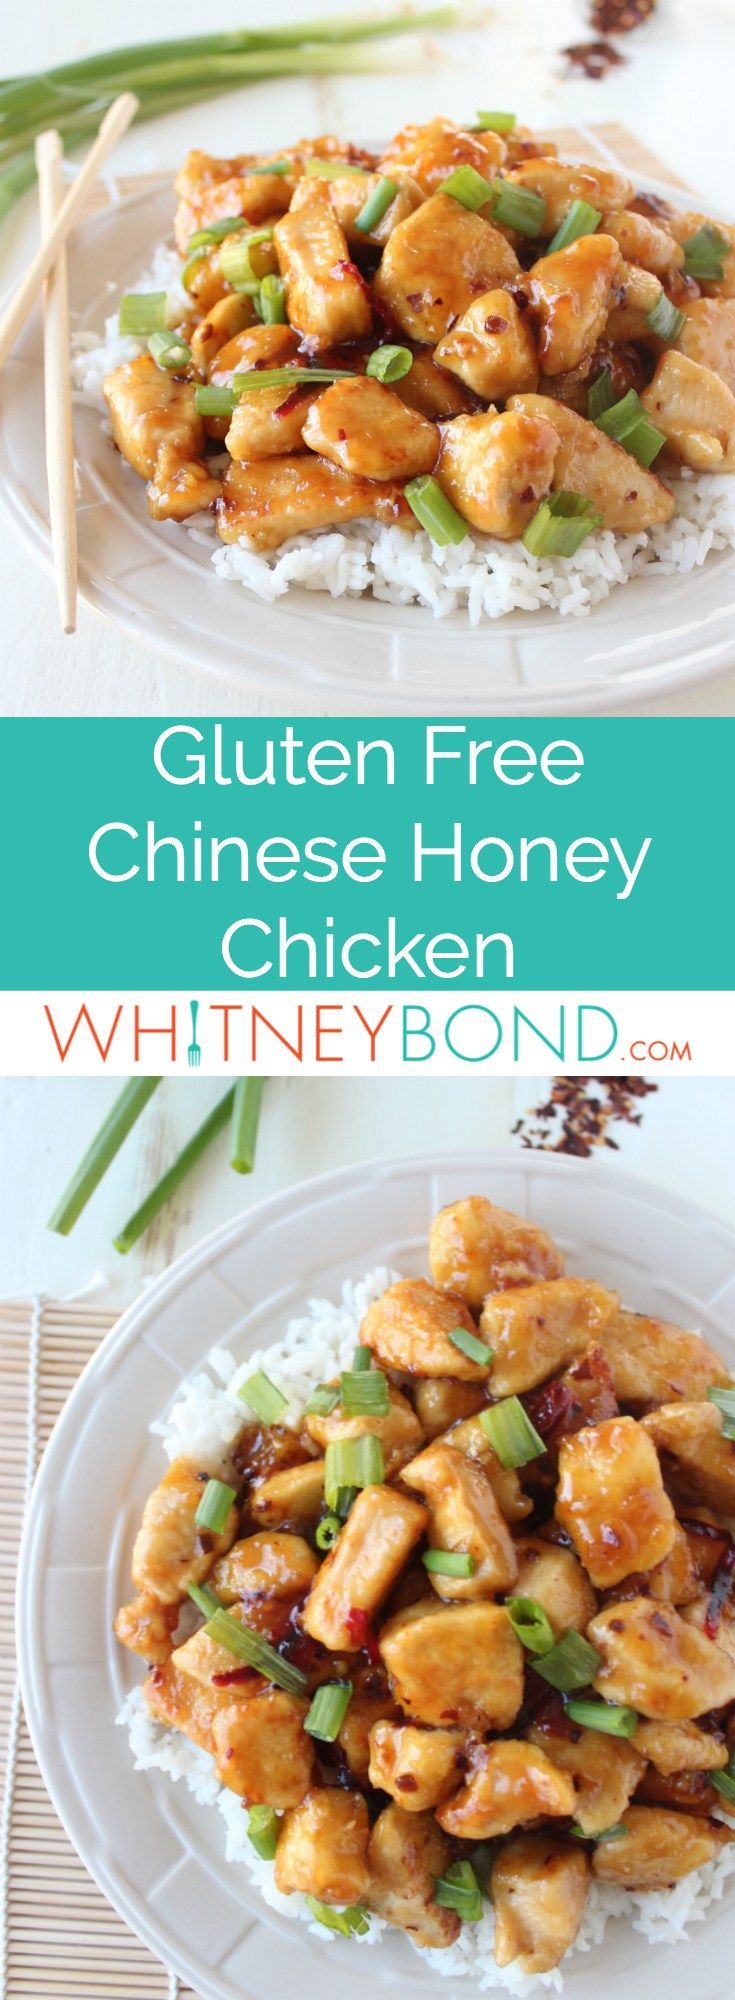 This healthier & better-than-takeout recipe for Chinese Honey Chicken is easy to make at home in only 29 minutes, and it's gluten free!